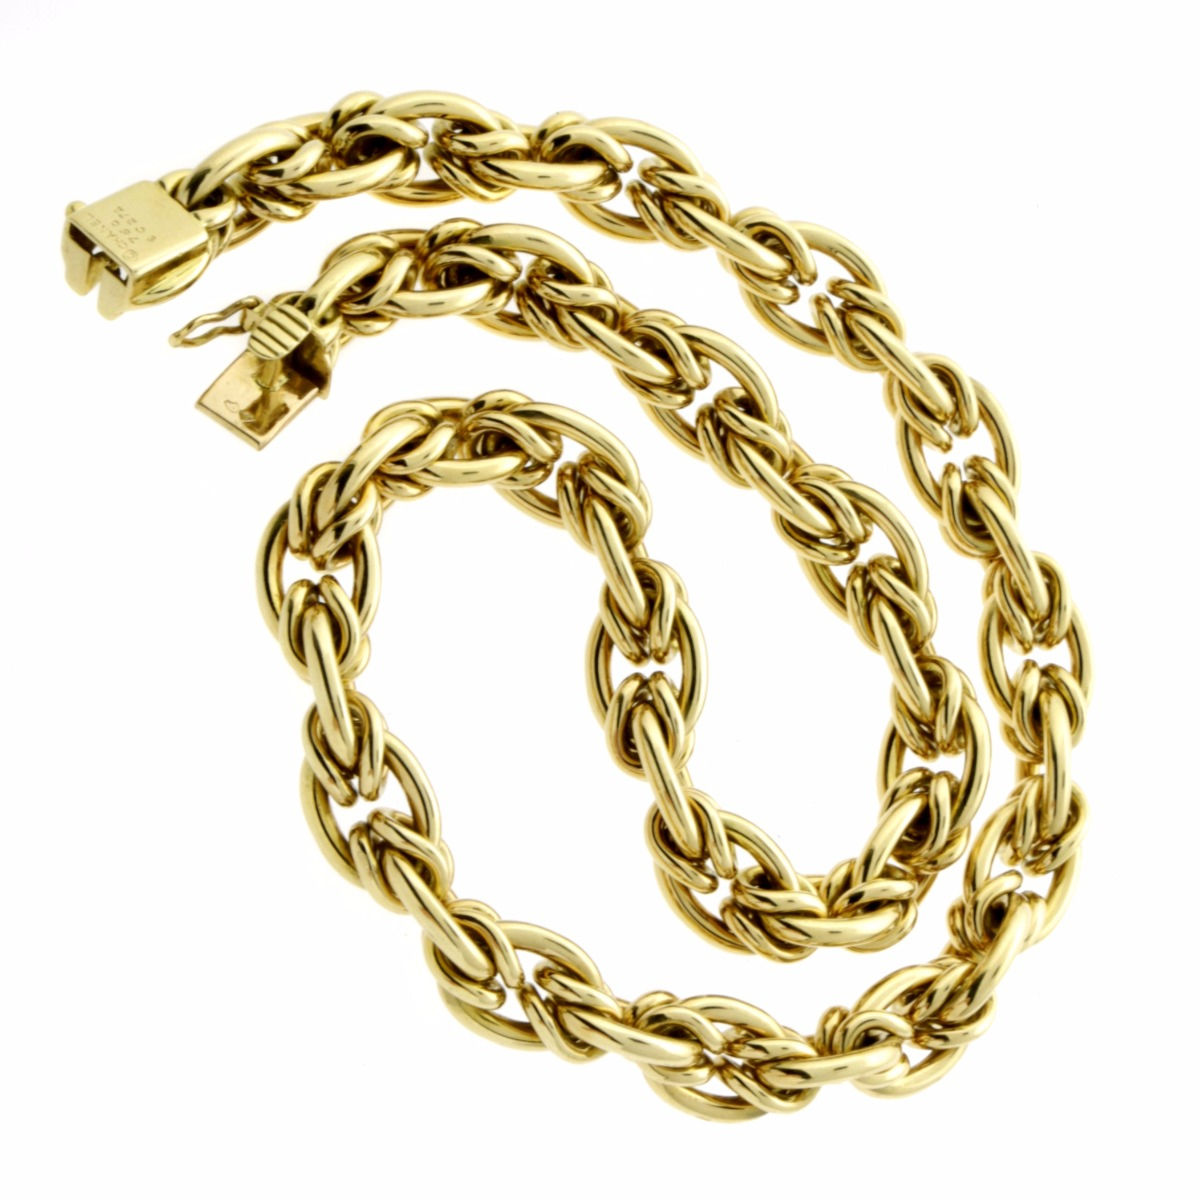 Chanel Woven Gold Choker Necklace - Chanel Jewelry